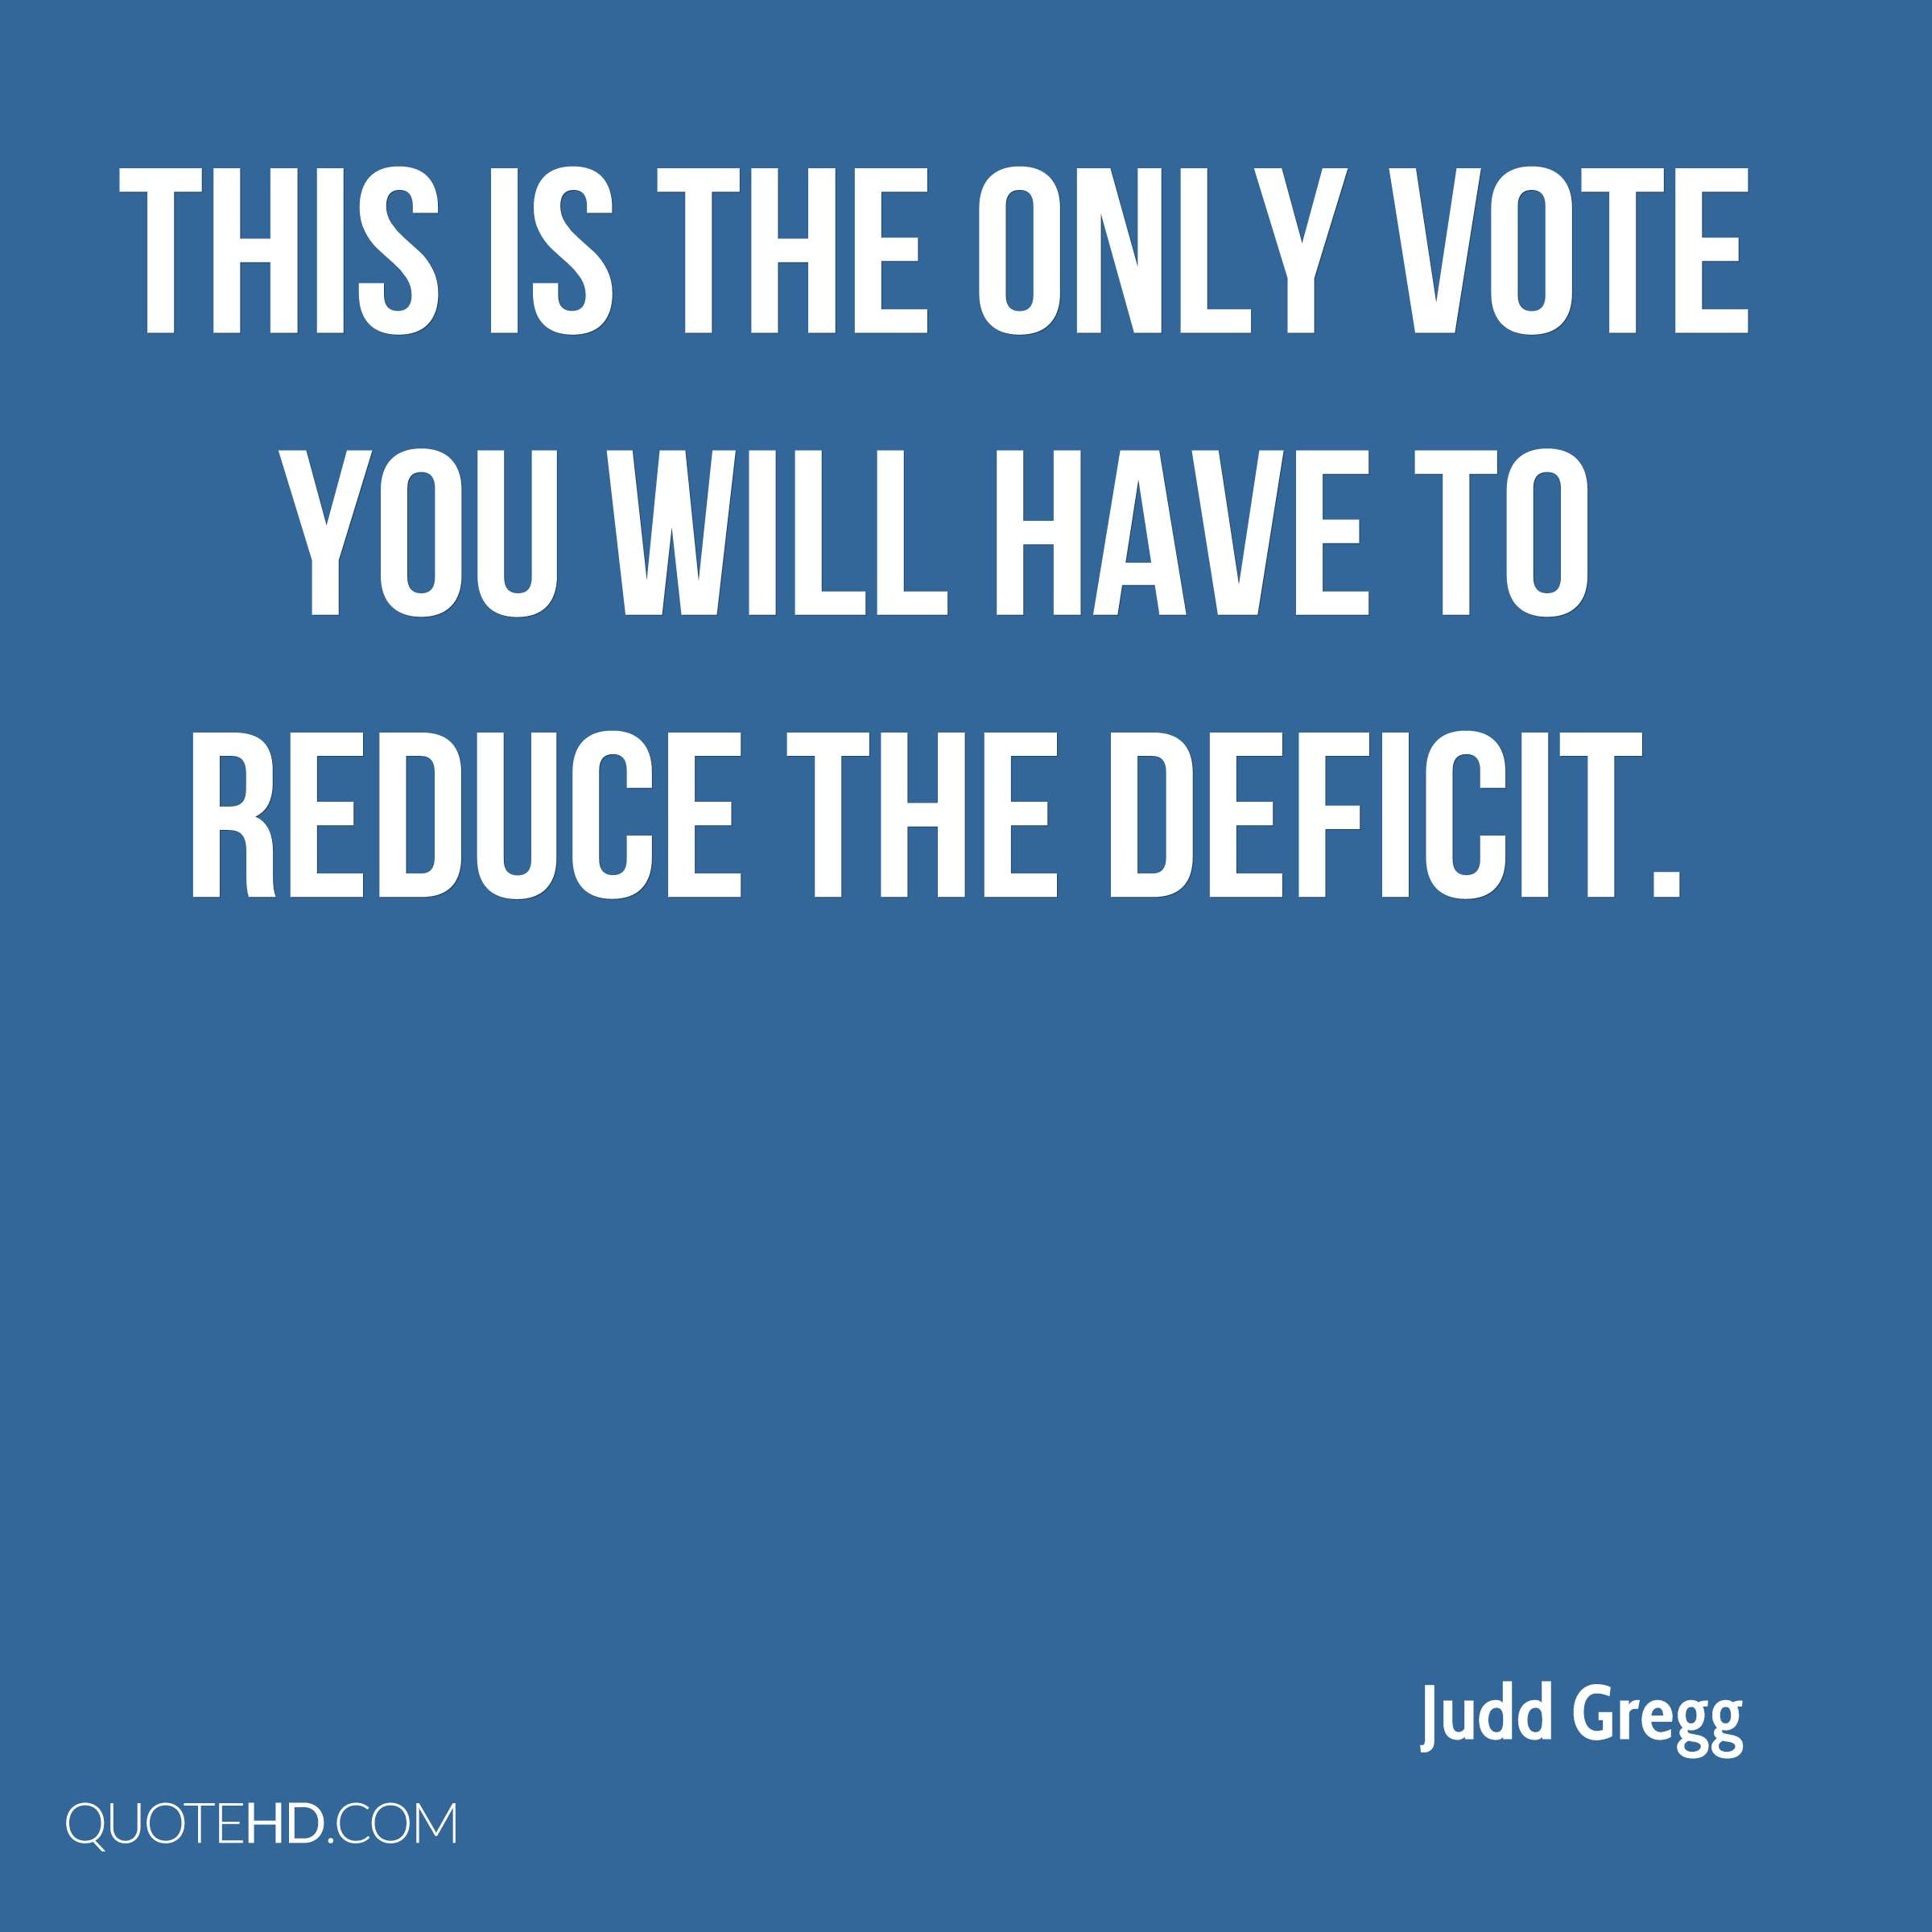 This is the only vote you will have to reduce the deficit.